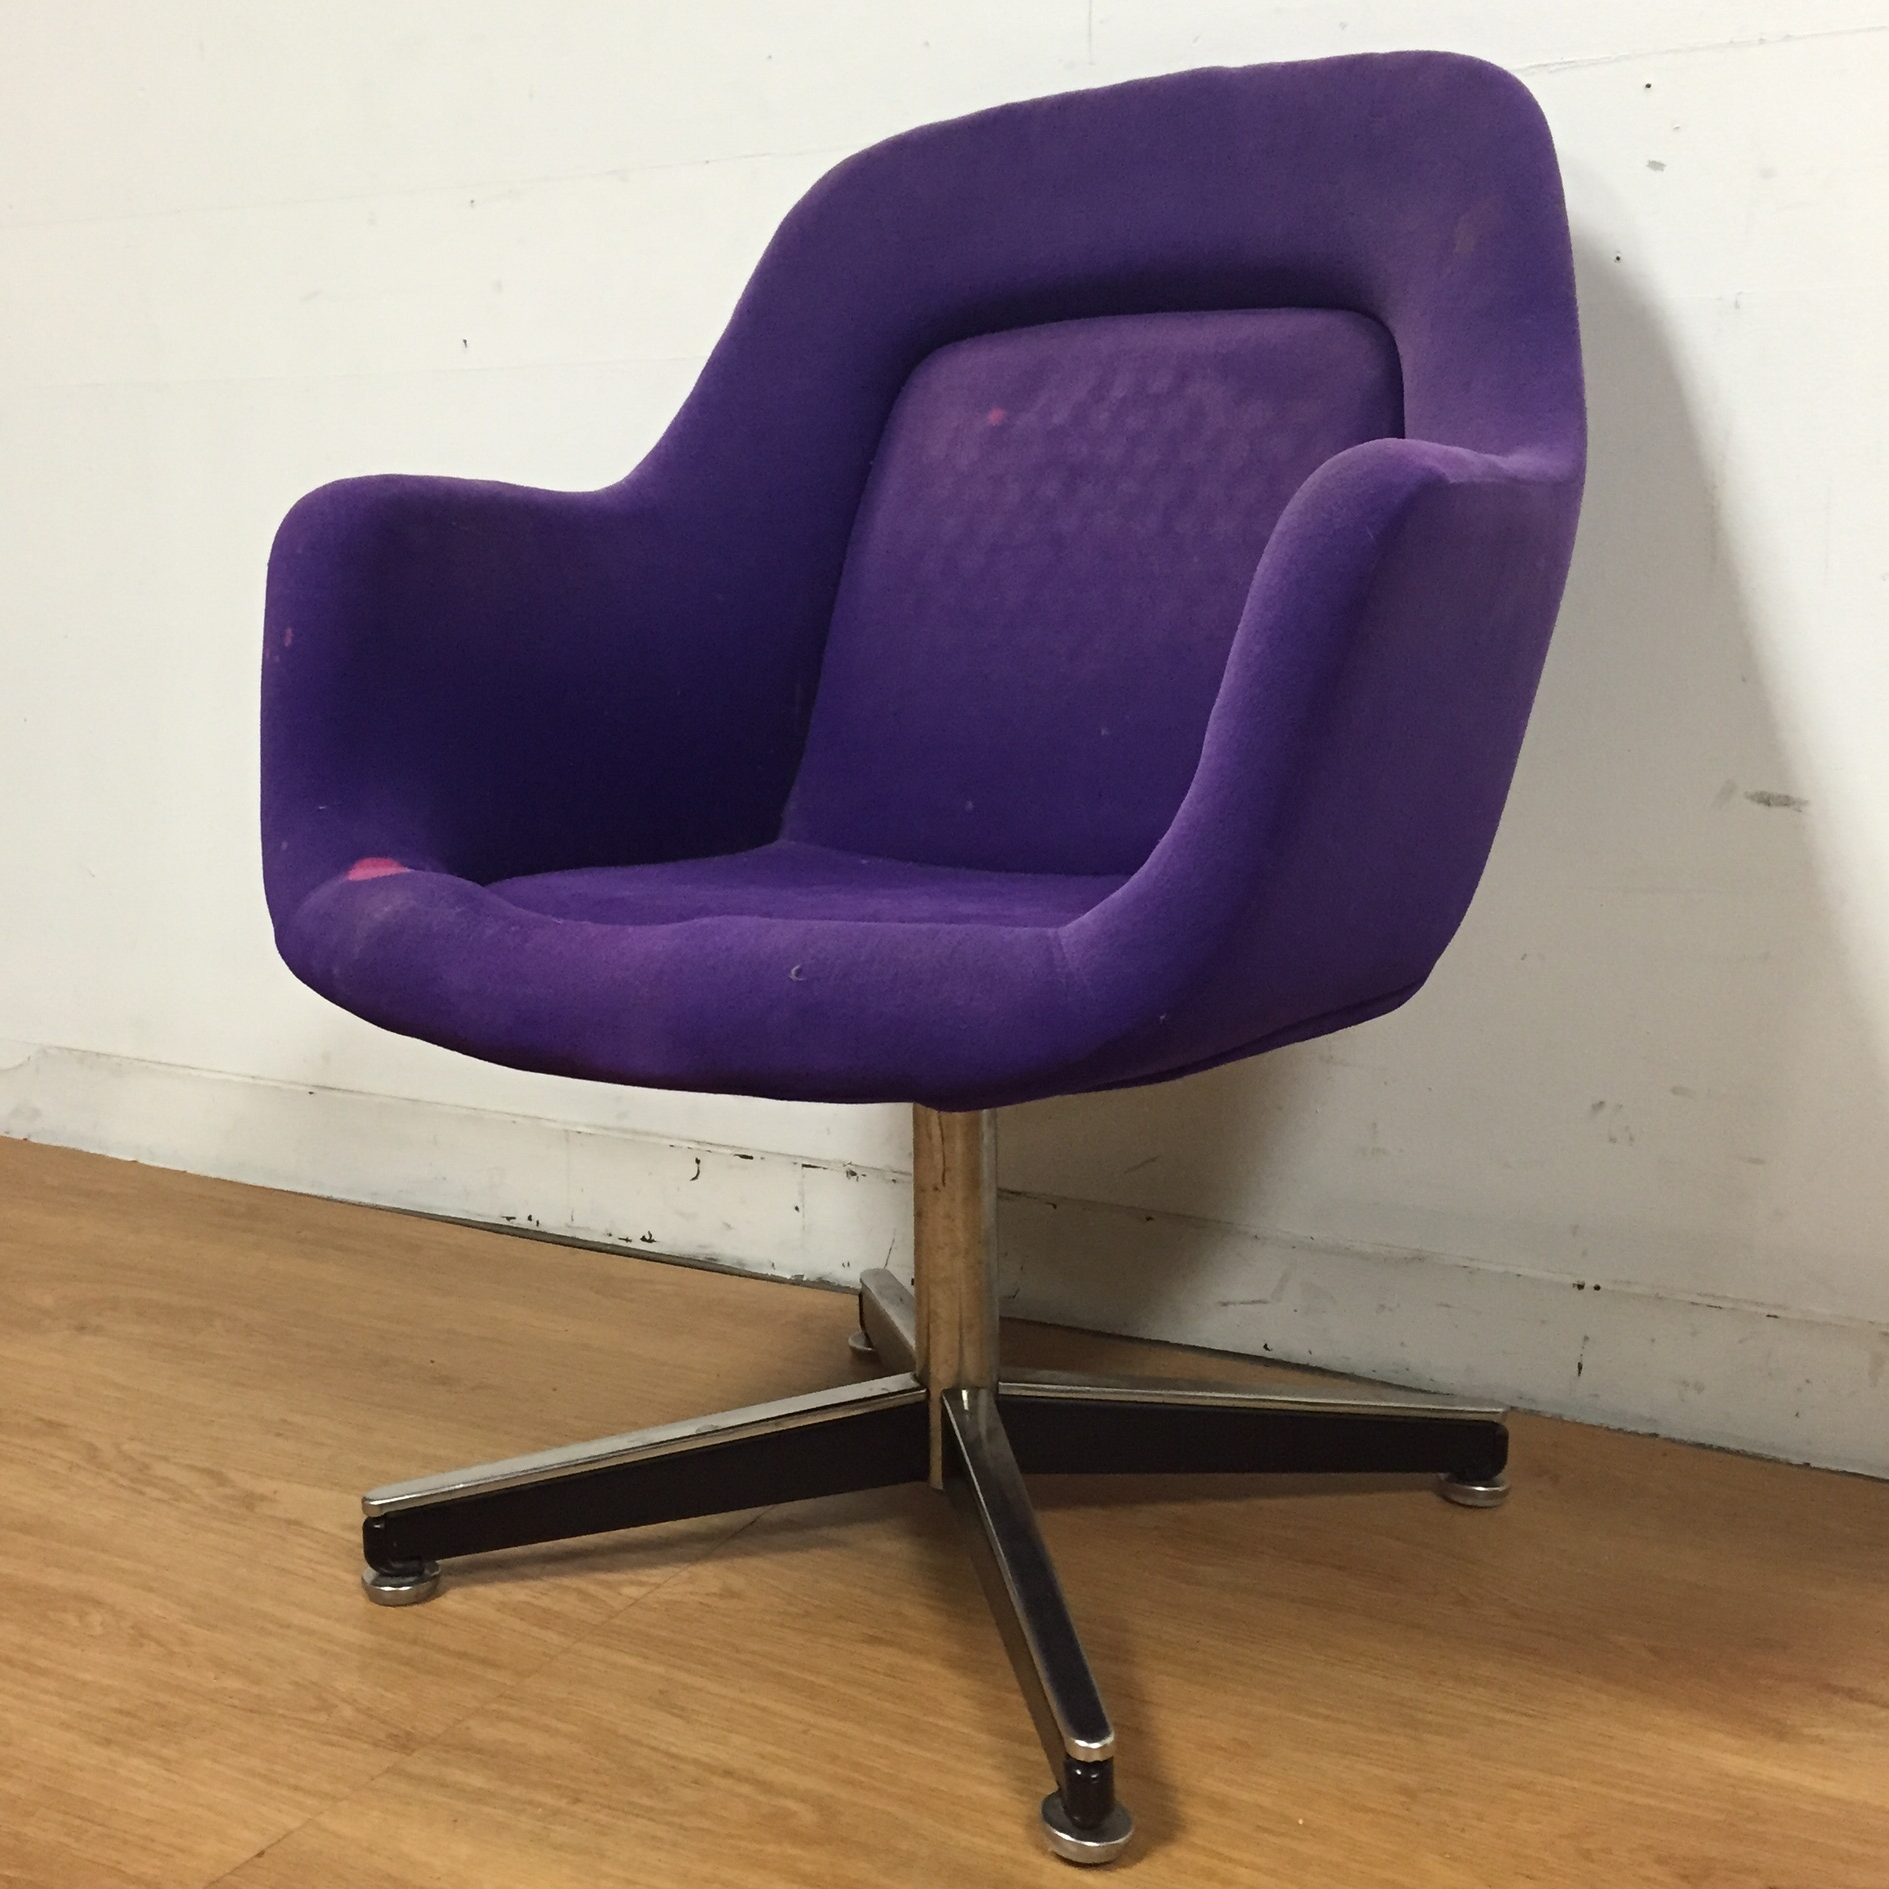 A Purple Swivel Office Desk Chair Designed By Max Pearson For Knoll  International. Seat Height